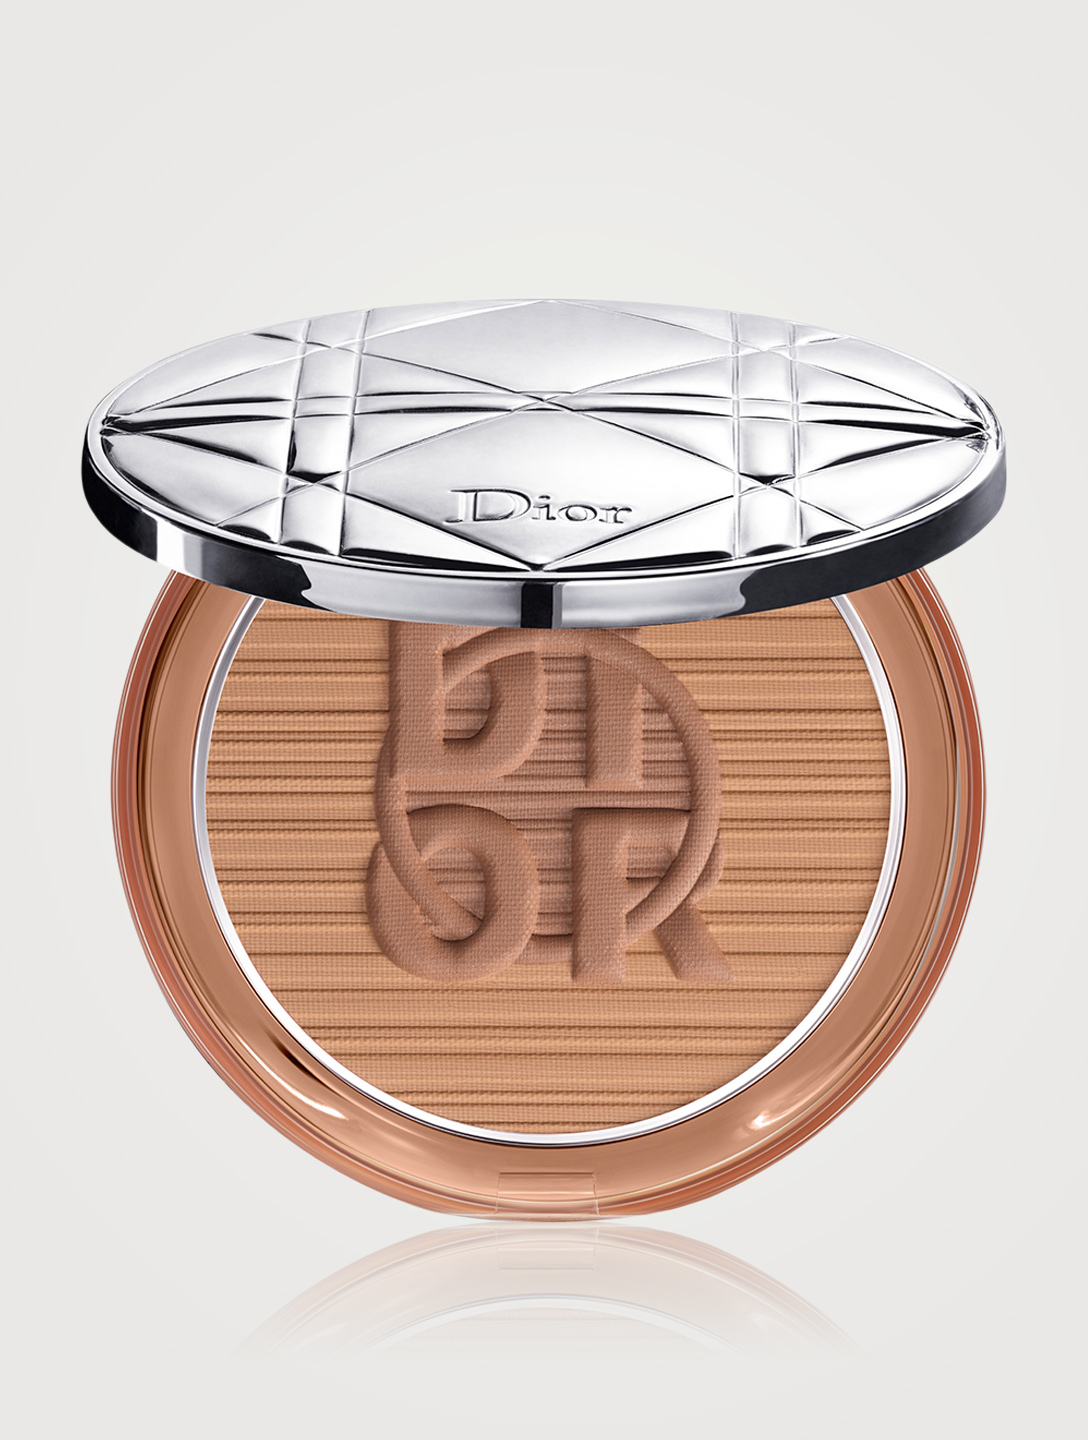 DIOR Diorskin Mineral Nude Bronze - Colour Games Limited Edition Beauty Metallic